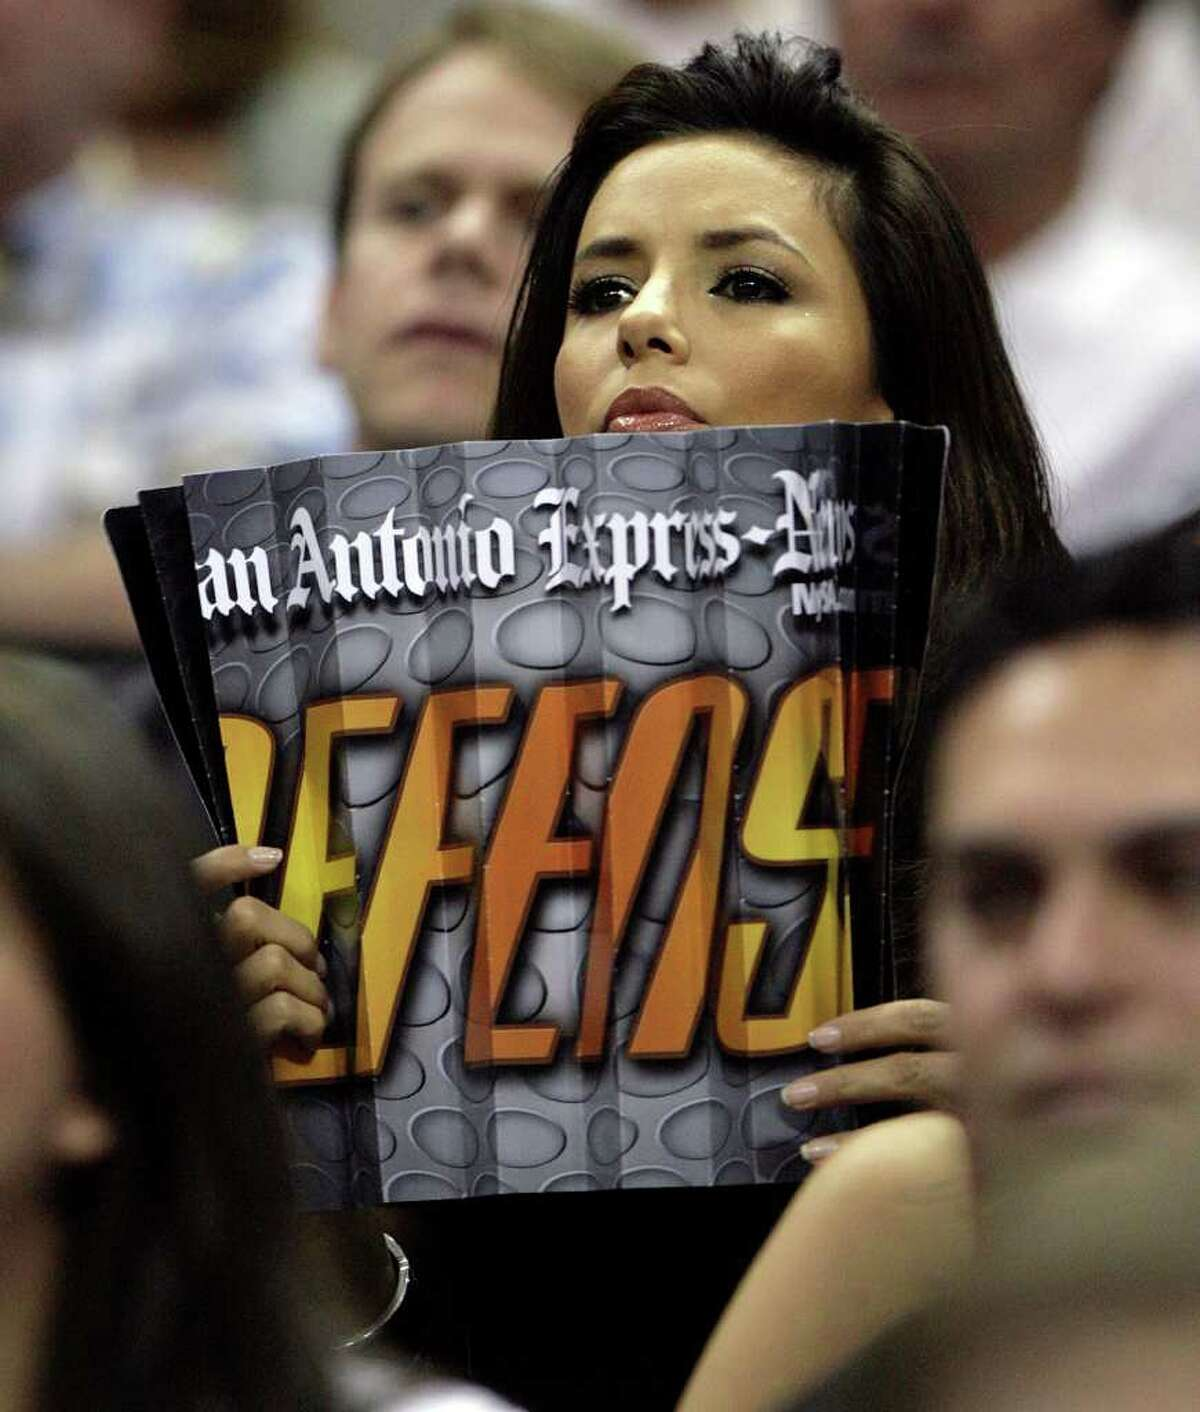 SPORTS ----- Eva Longoria holds an Express-News give-away item Saturday night May 12, 2007 at the AT&T Center in San Antonio during the Spurs' third game of their best-of-seven, second-round playoff series against the Suns.